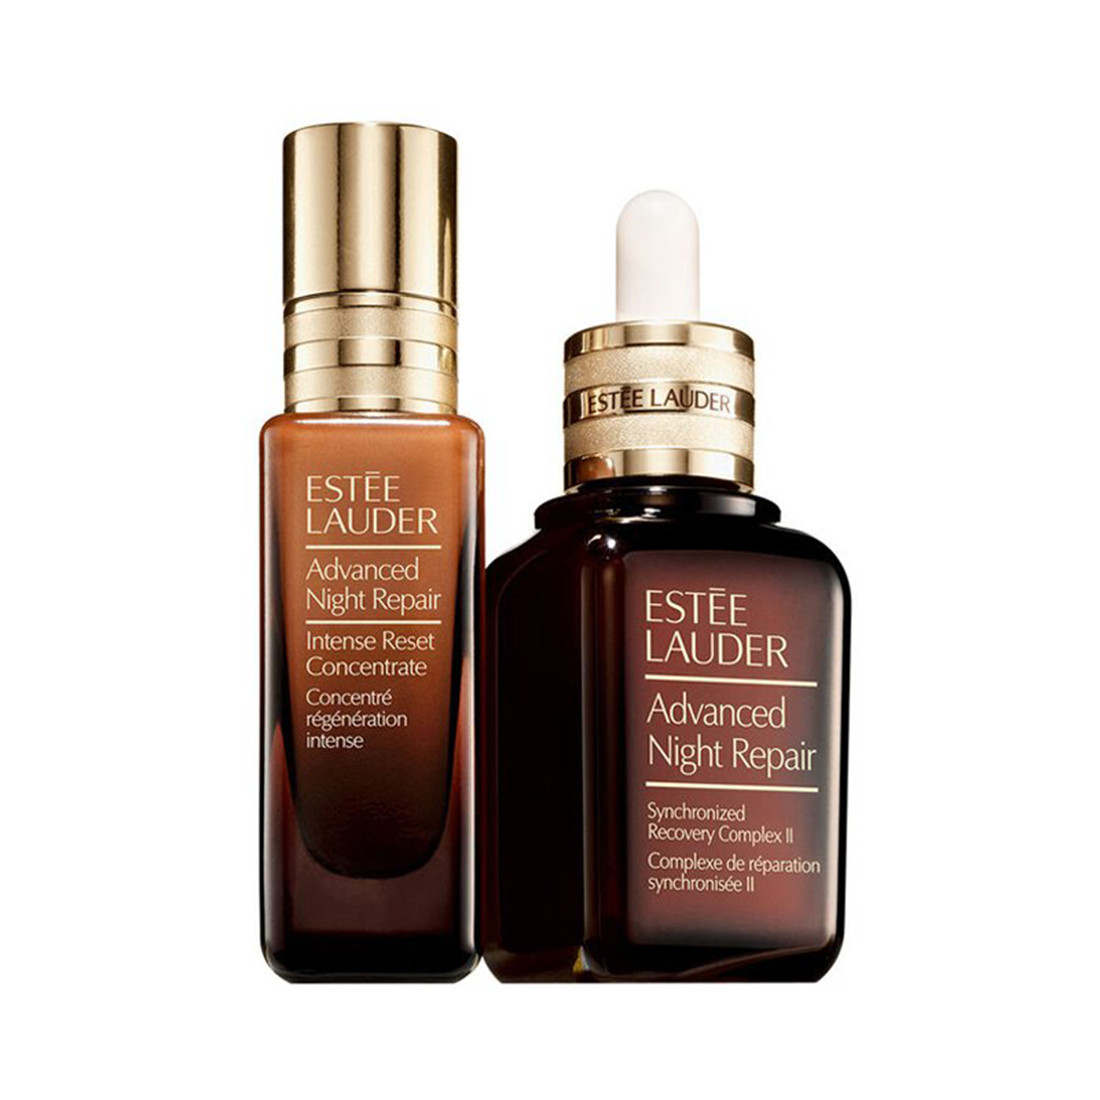 Estee Lauder Advanced Night Repair Intense Reset Concentrate Set Unineed